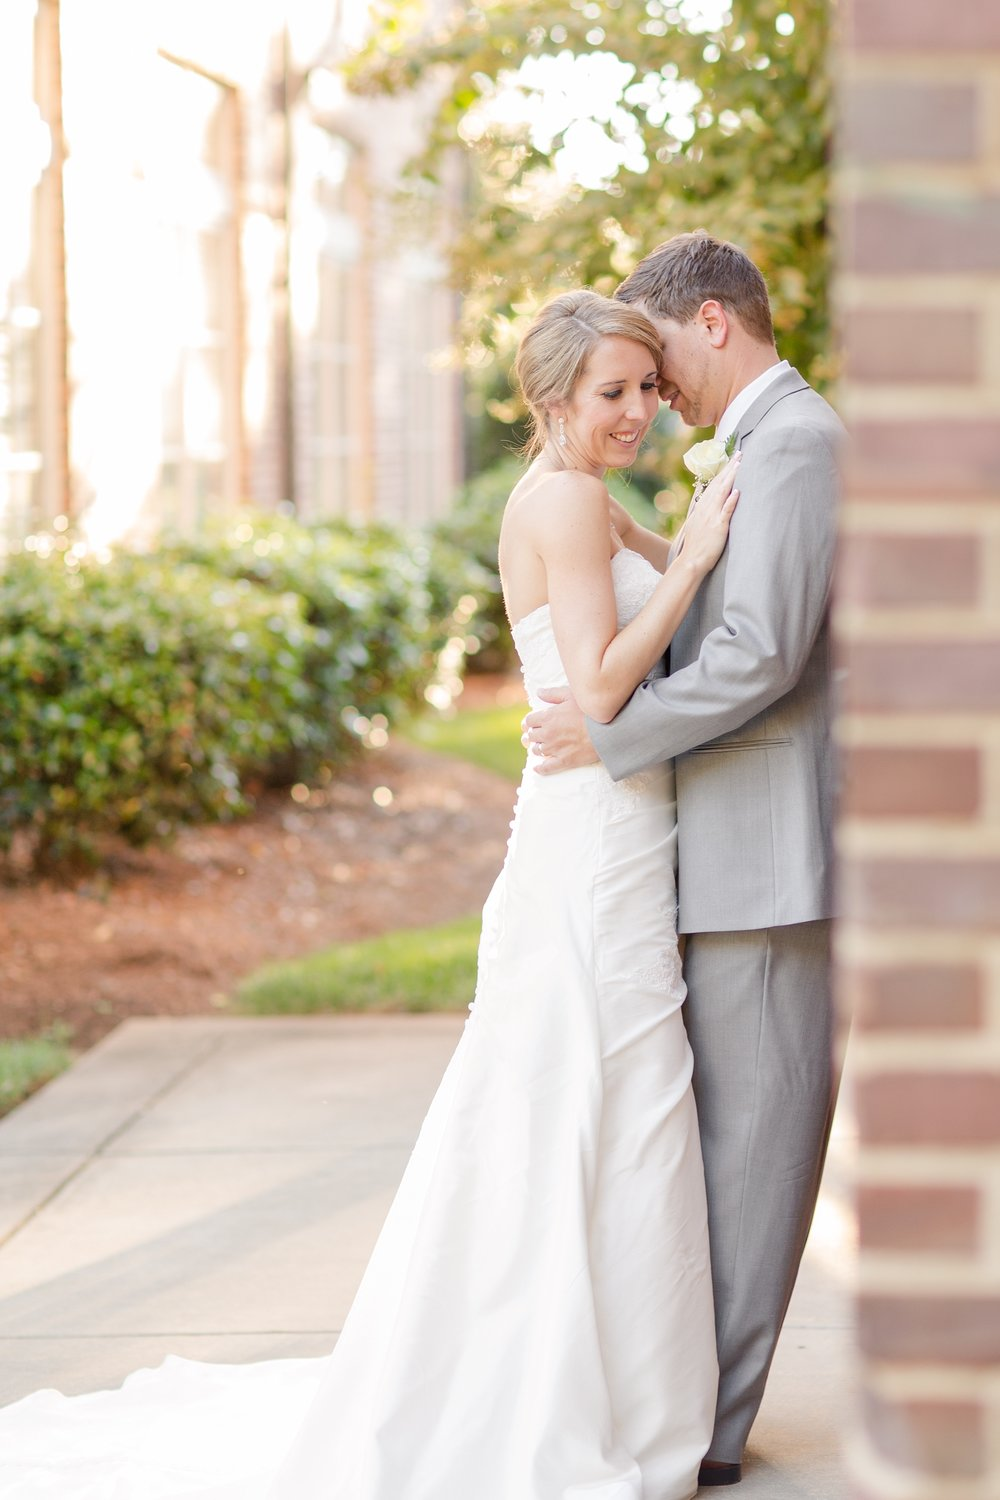 Diers 3-Bride & Groom Portraits-1029_anna grace photography charlotte north carolina wedding photographer photo.jpg